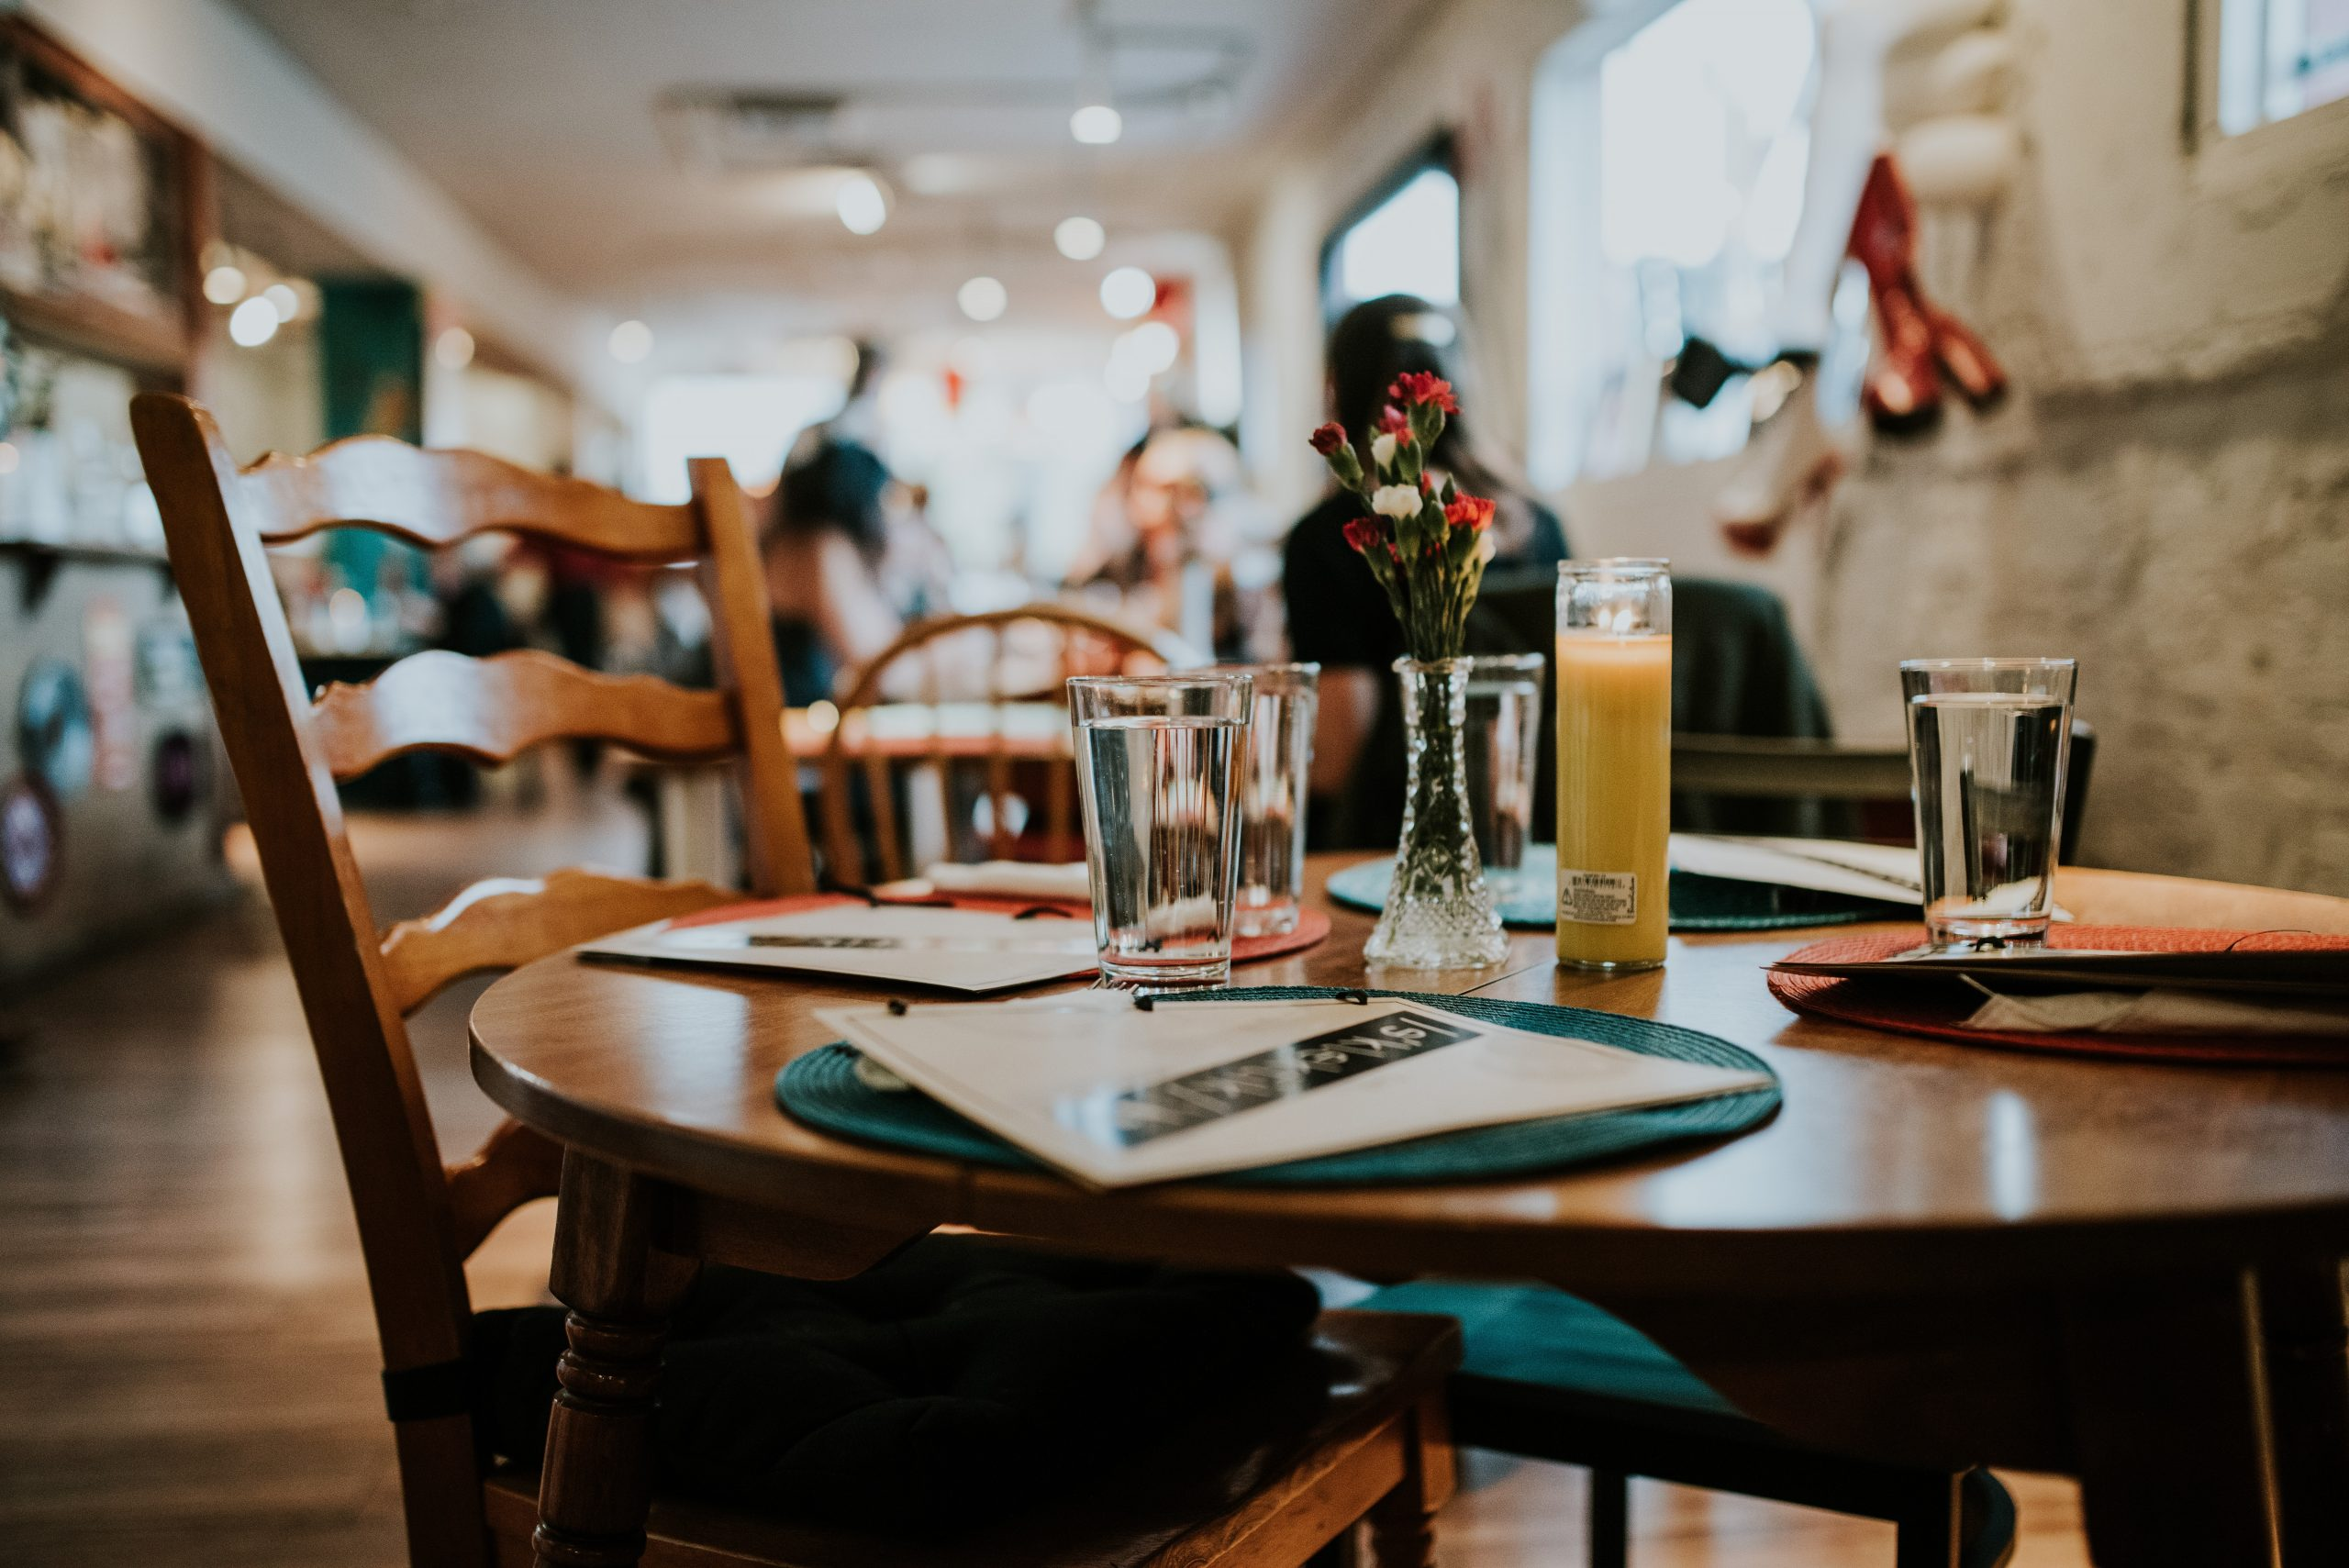 paper of interview questions and documents on the restaurant table